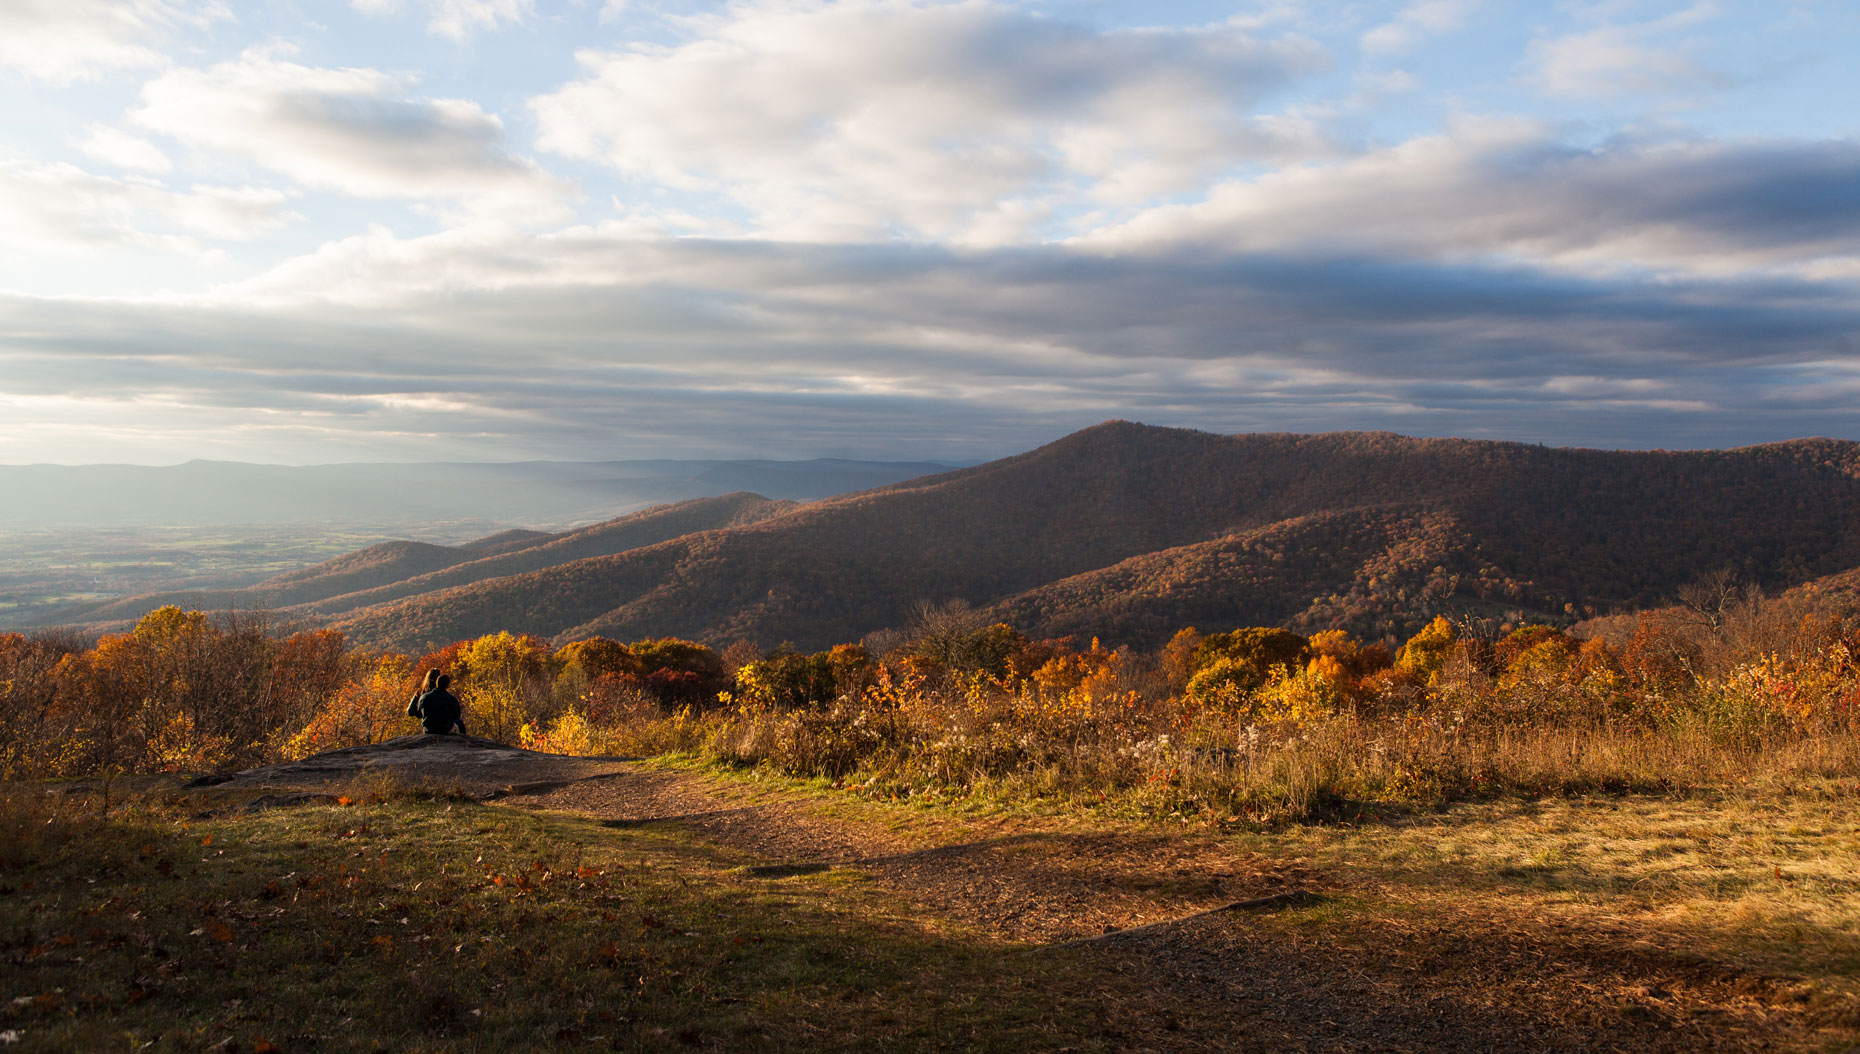 Nature + Landscape│Shenandoah National Park, Virginia